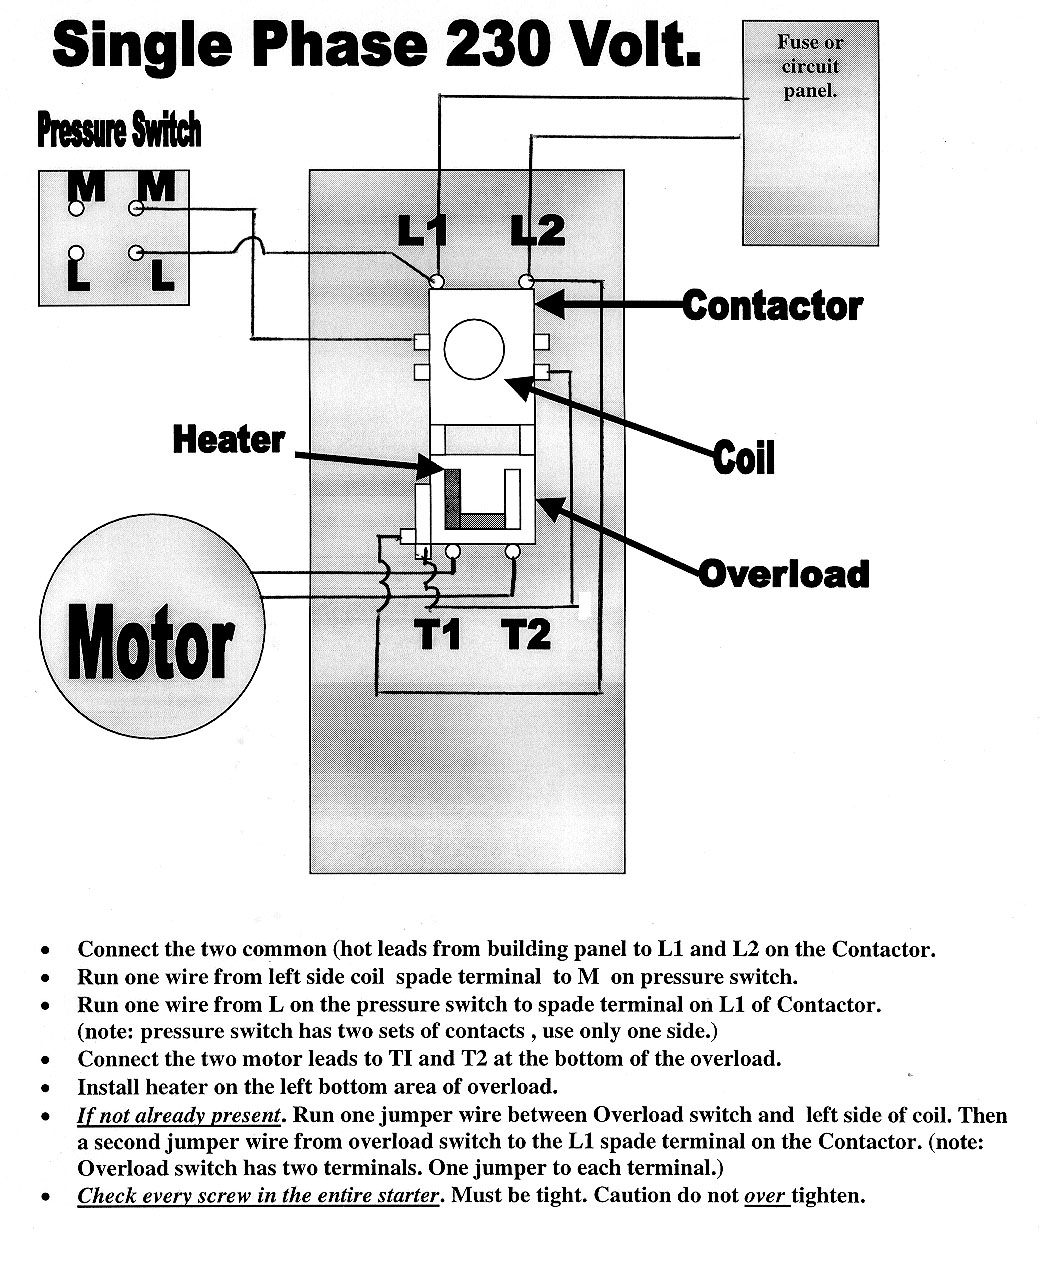 square d wiring diagram 08 f150 fuse box schematic starters shunt trip circuit breaker click here to view print single phase